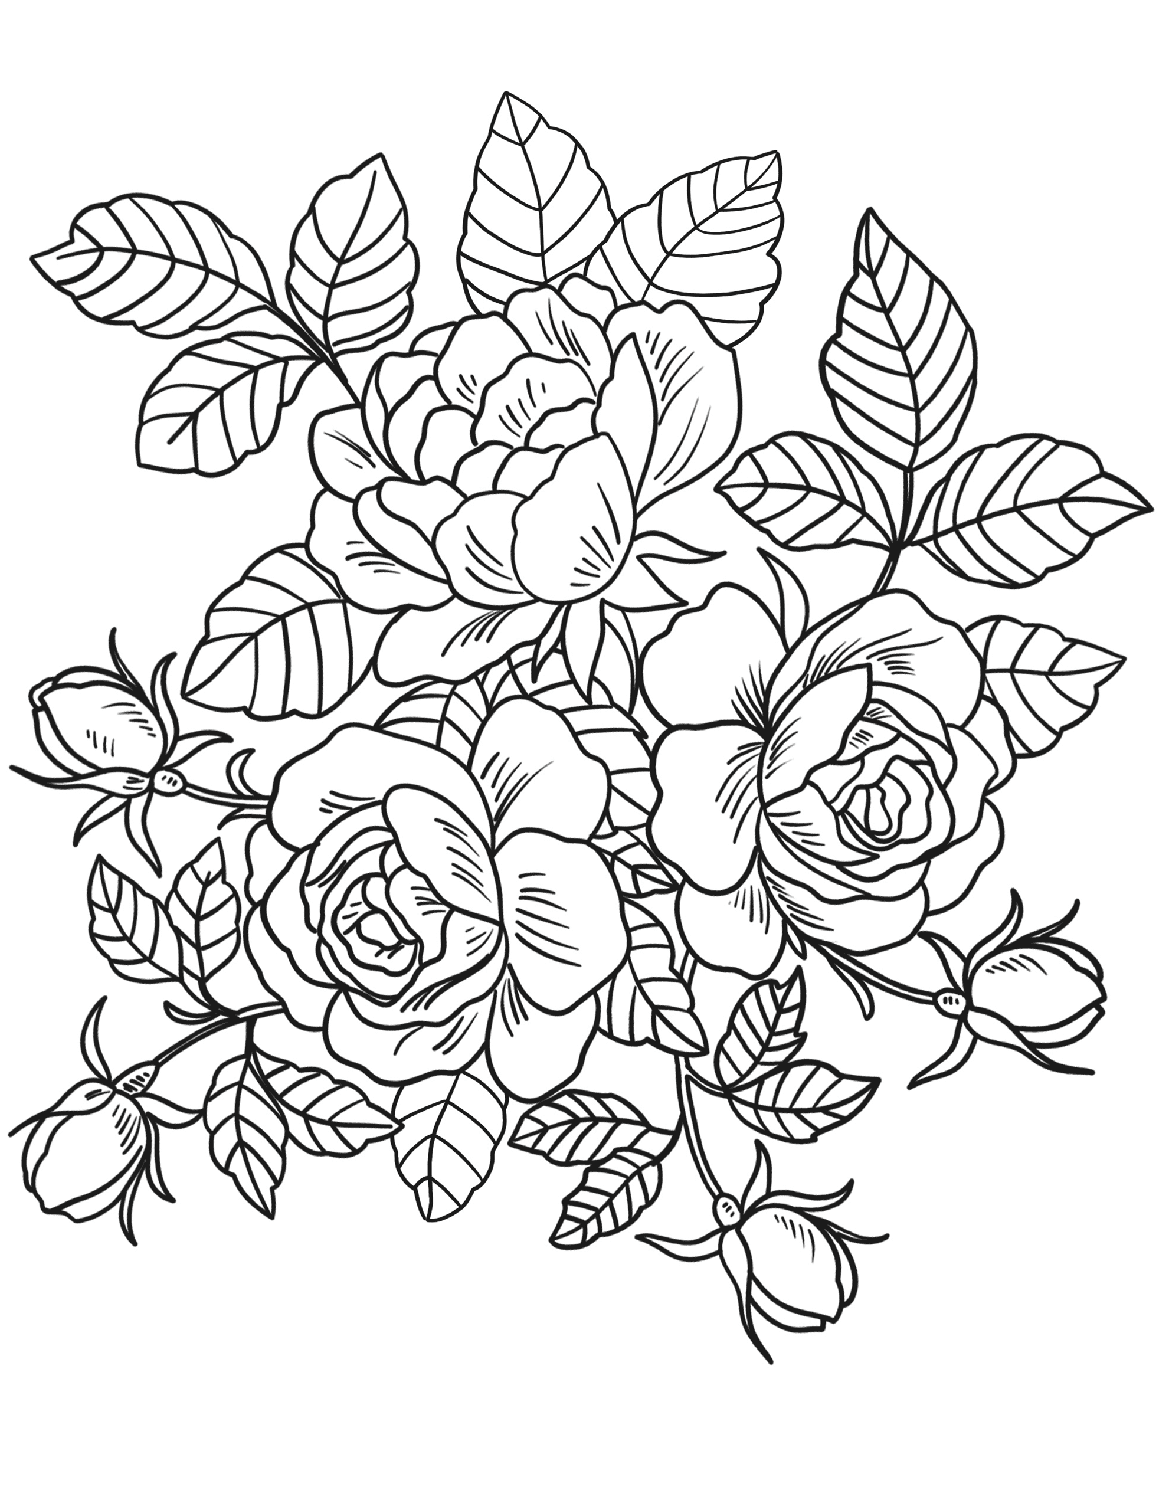 coloring picture of flower 10 cool coloring pages free premium templates flower picture coloring of